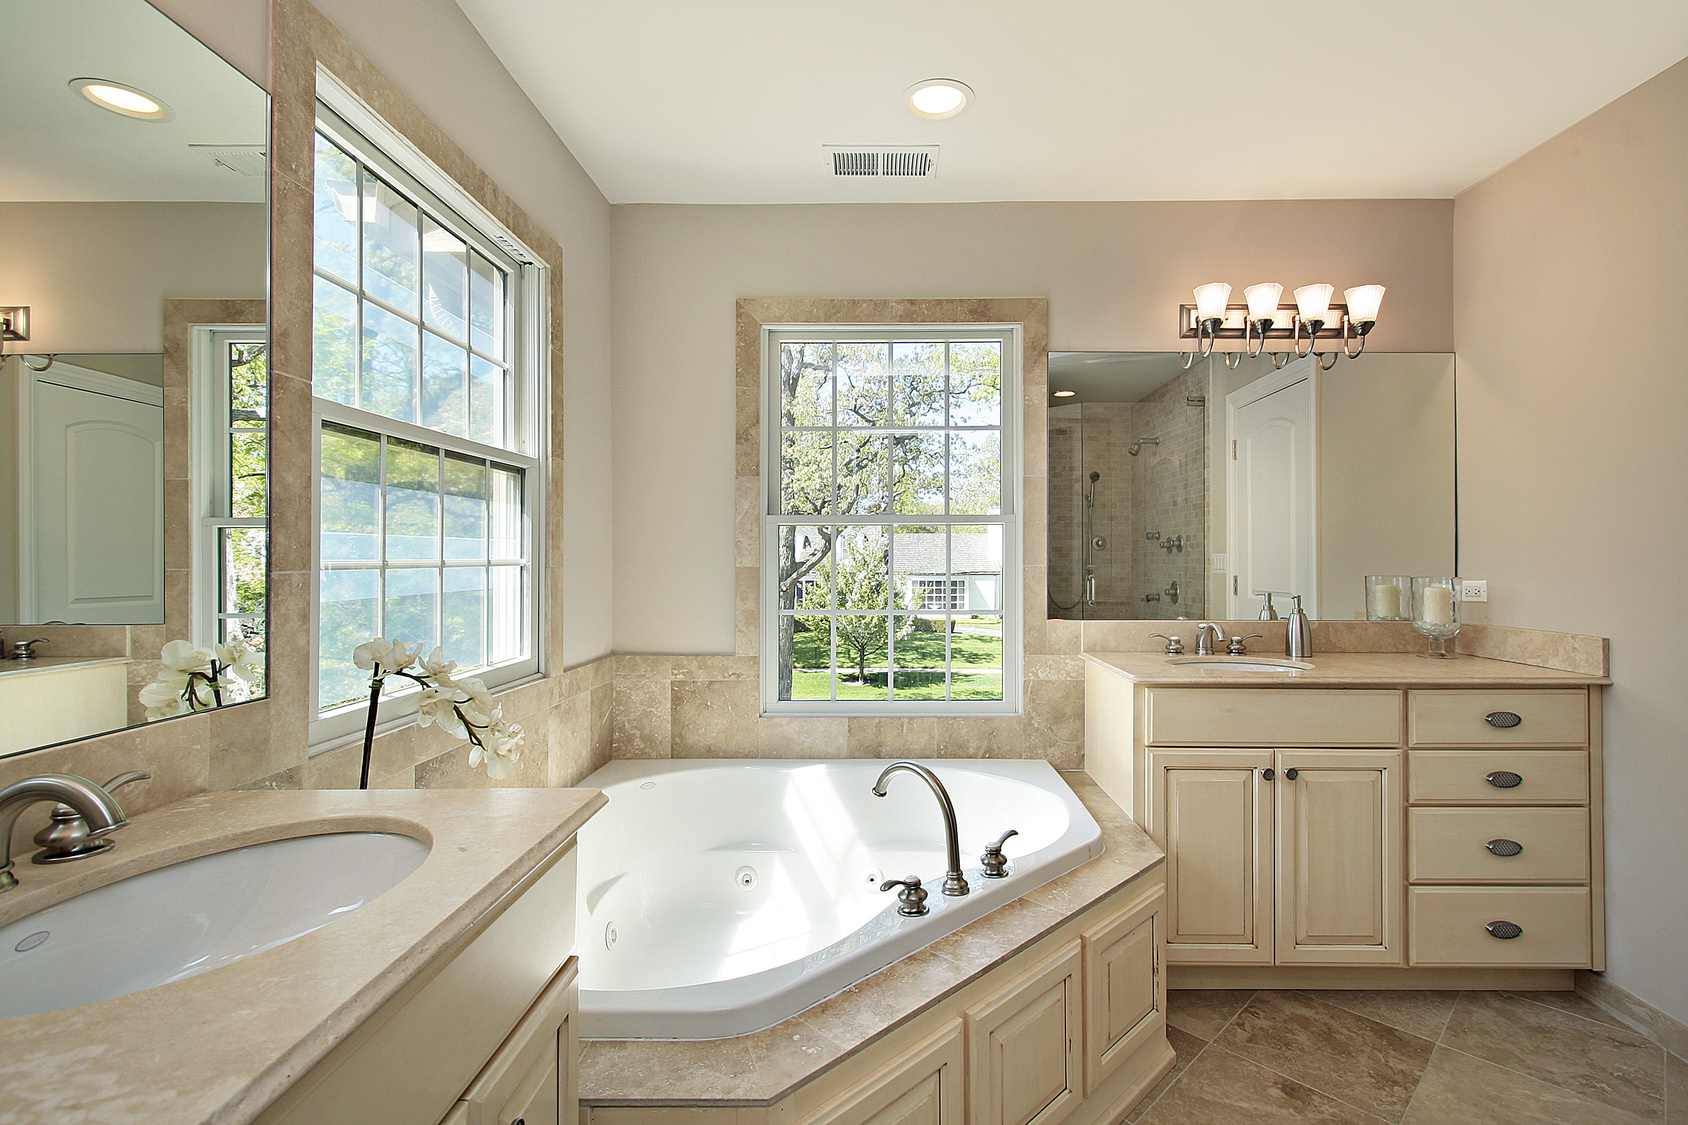 National Renovation Review - Bathroom remodel grapevine tx